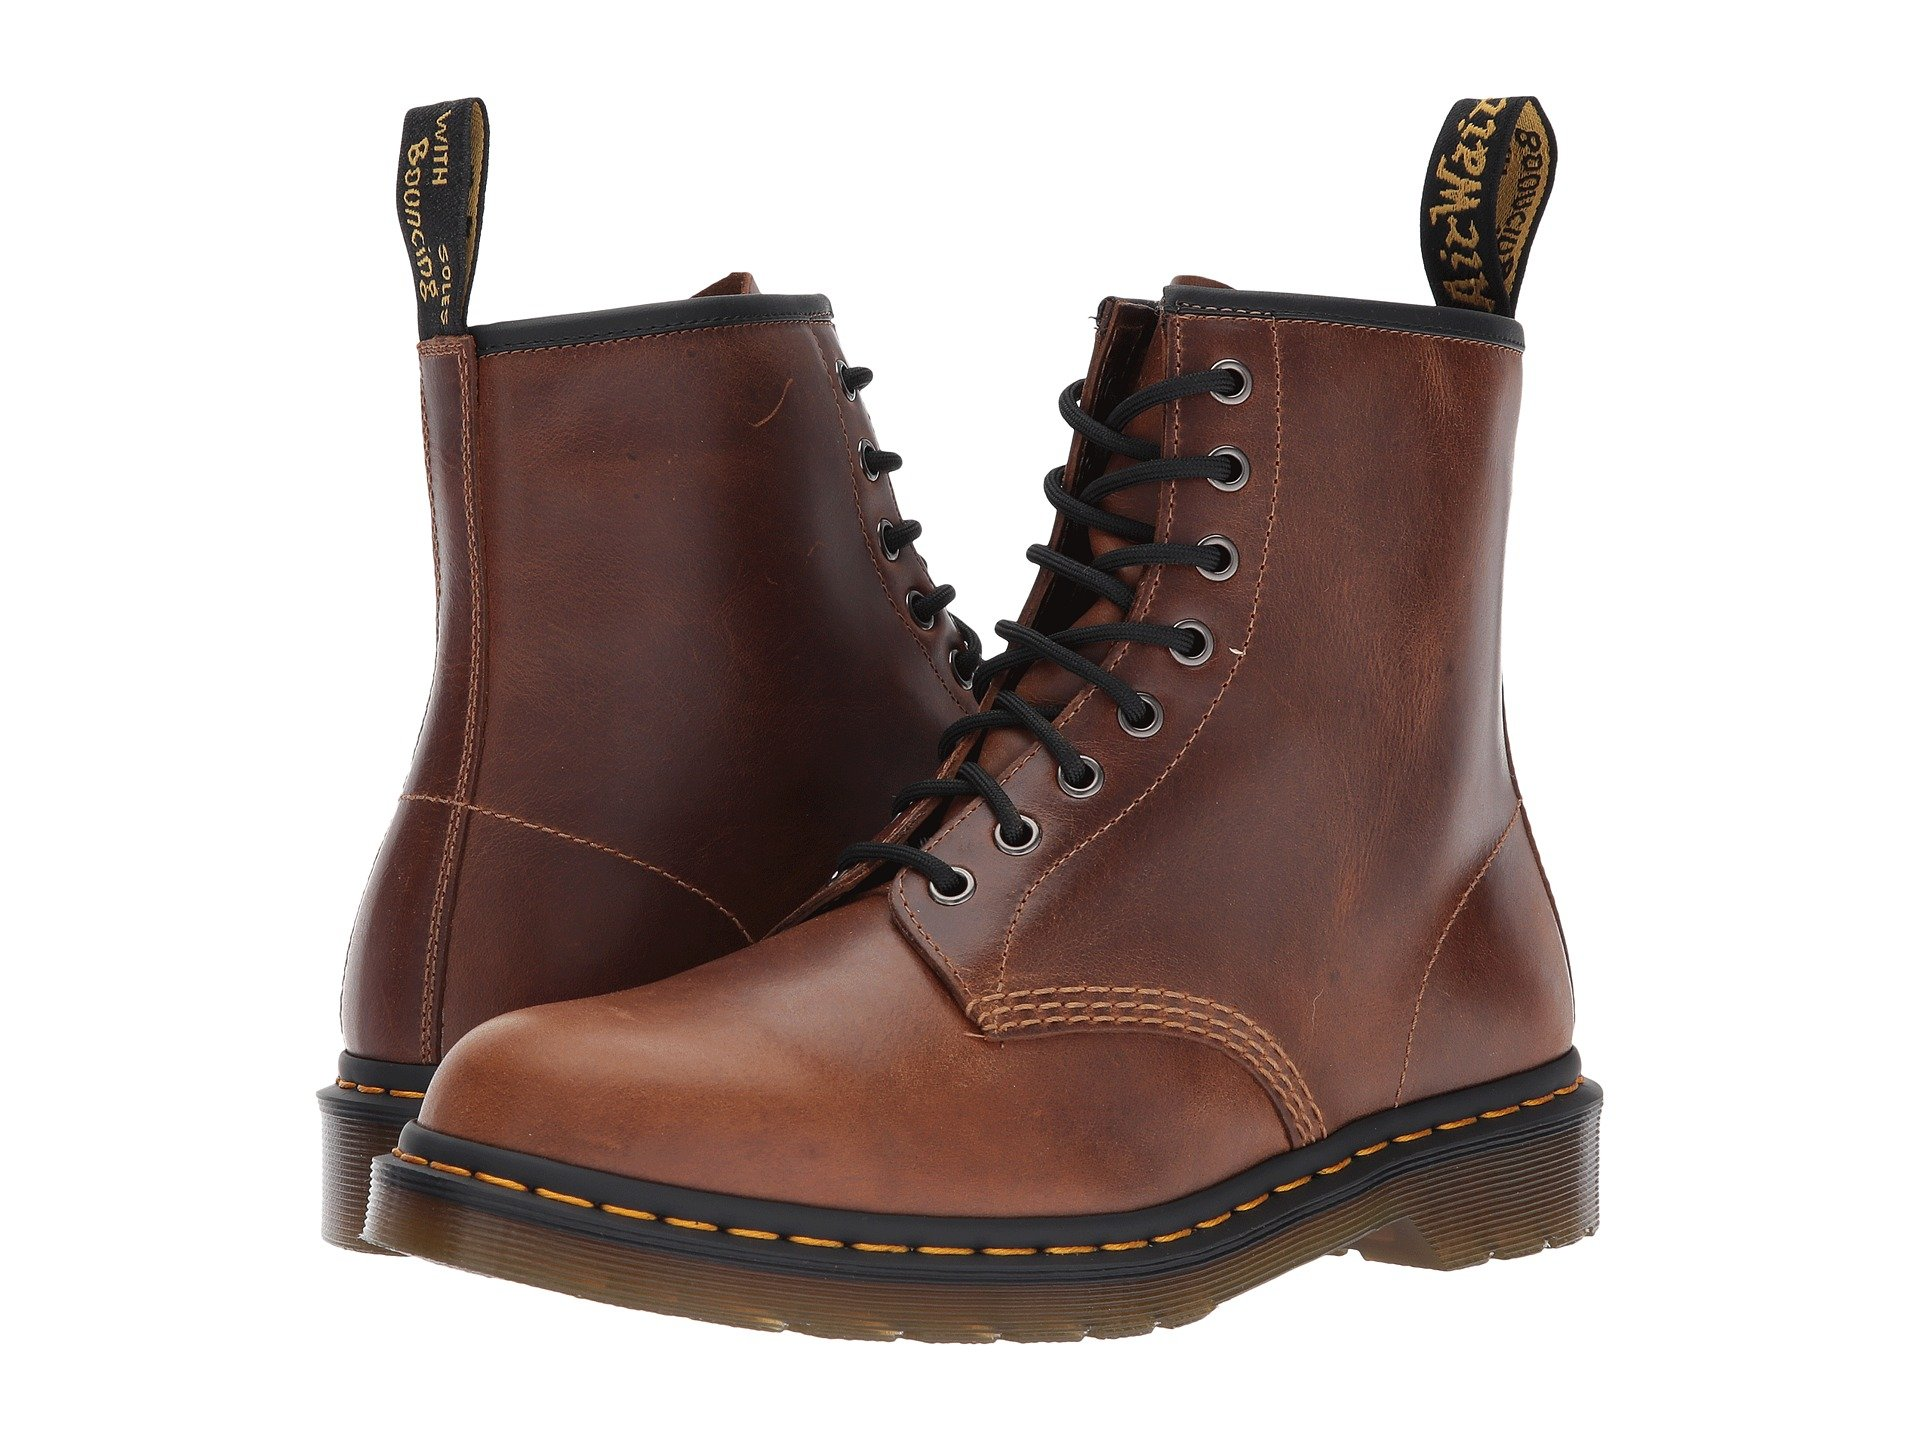 1460 Boot 8 Dr eye Pu black Orleans Martens Butterscotch xOgxw5Zq